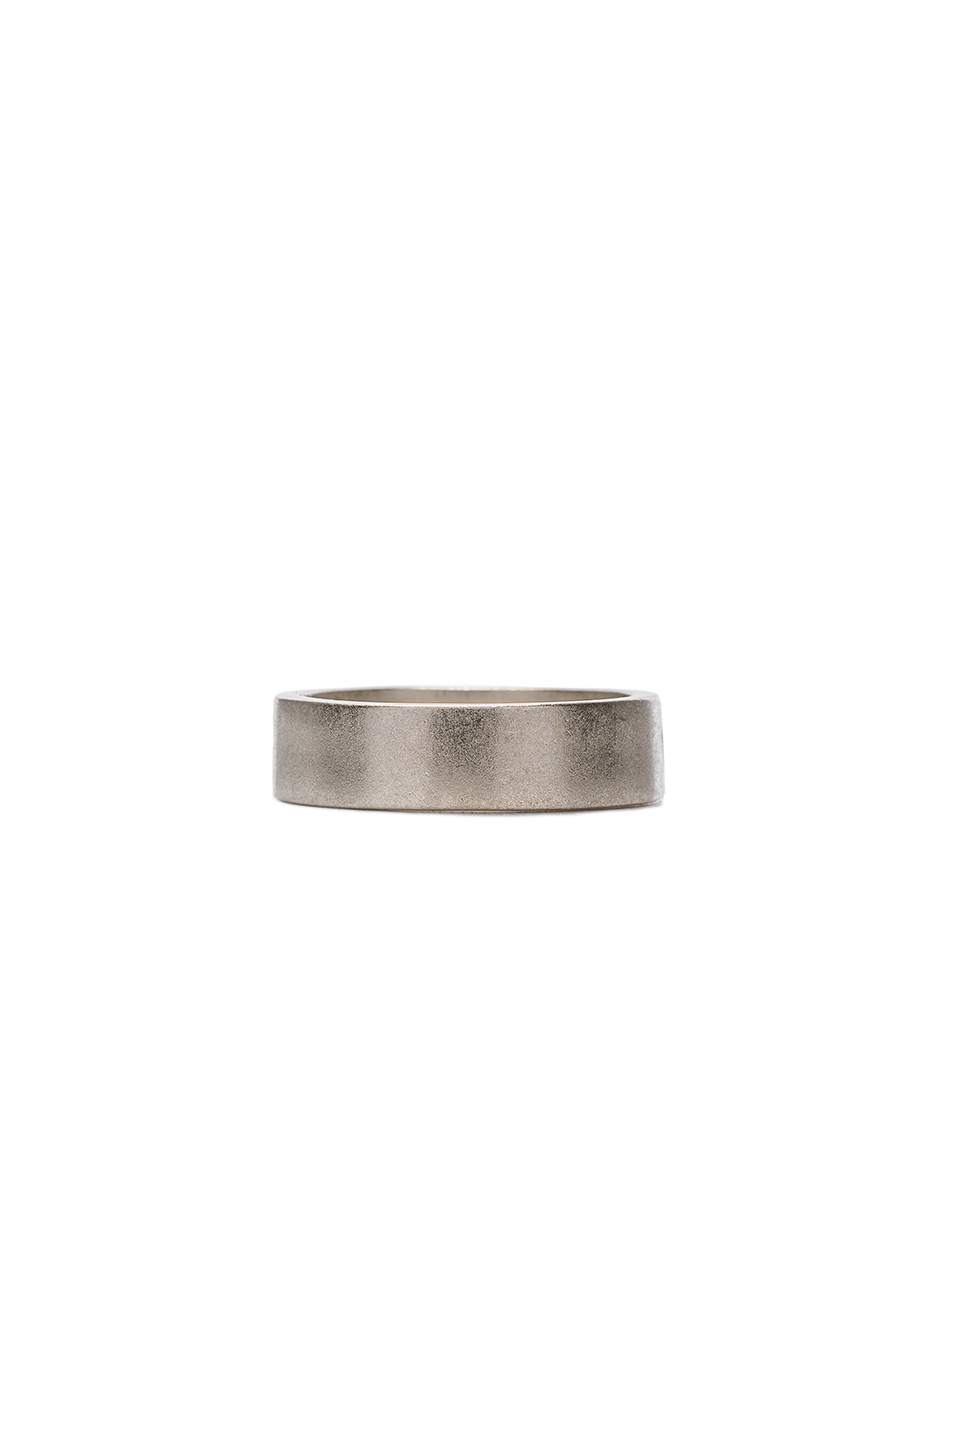 Maison Margiela Ring in Metallics